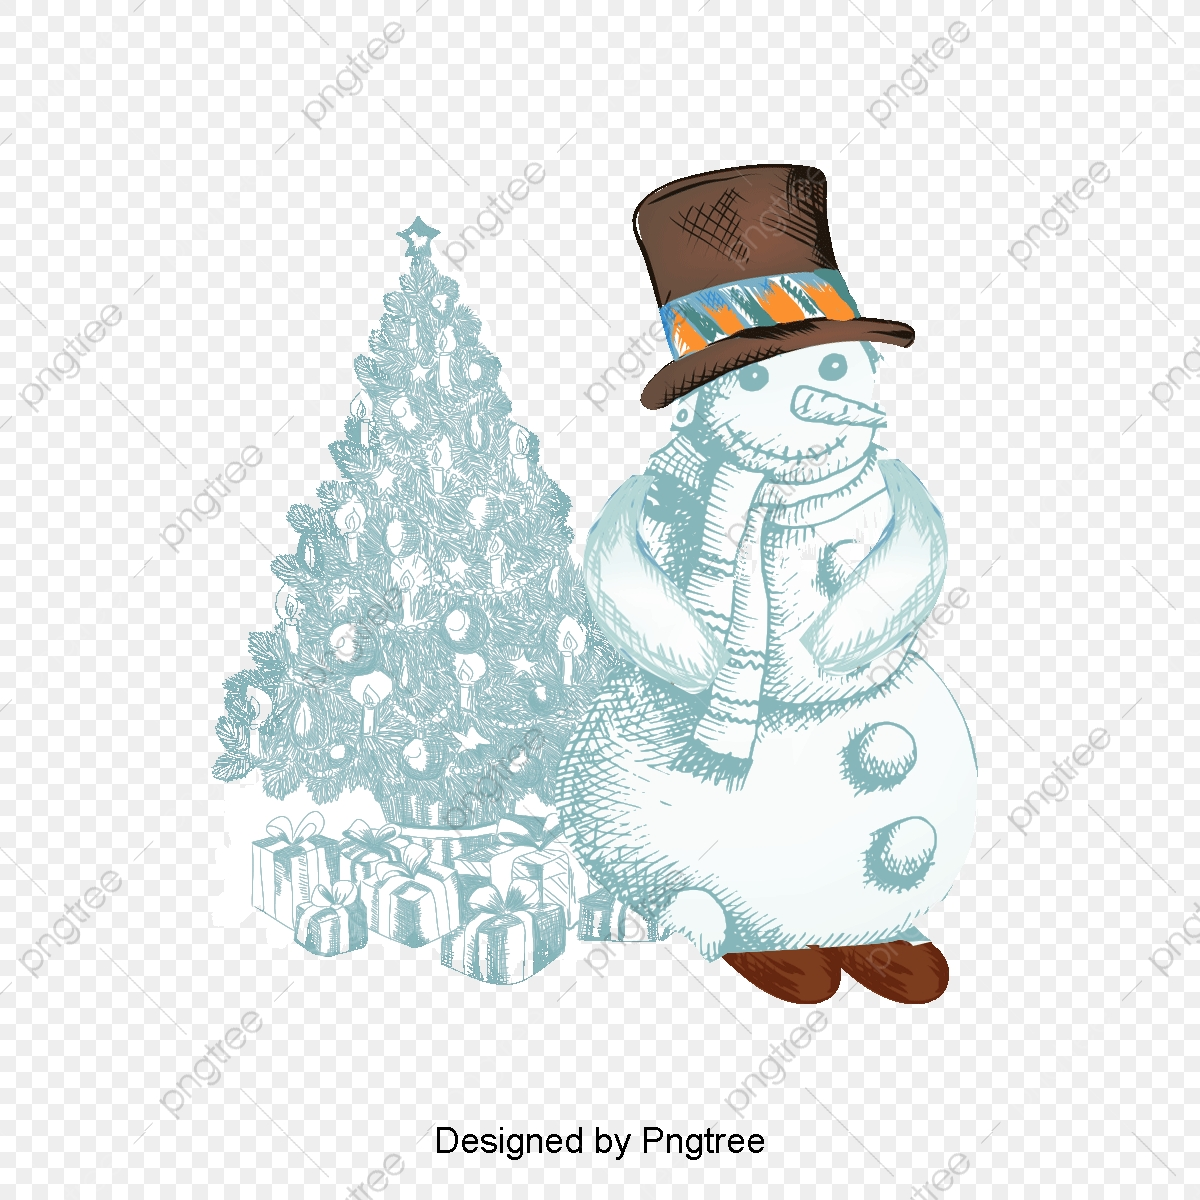 hight resolution of category snowman